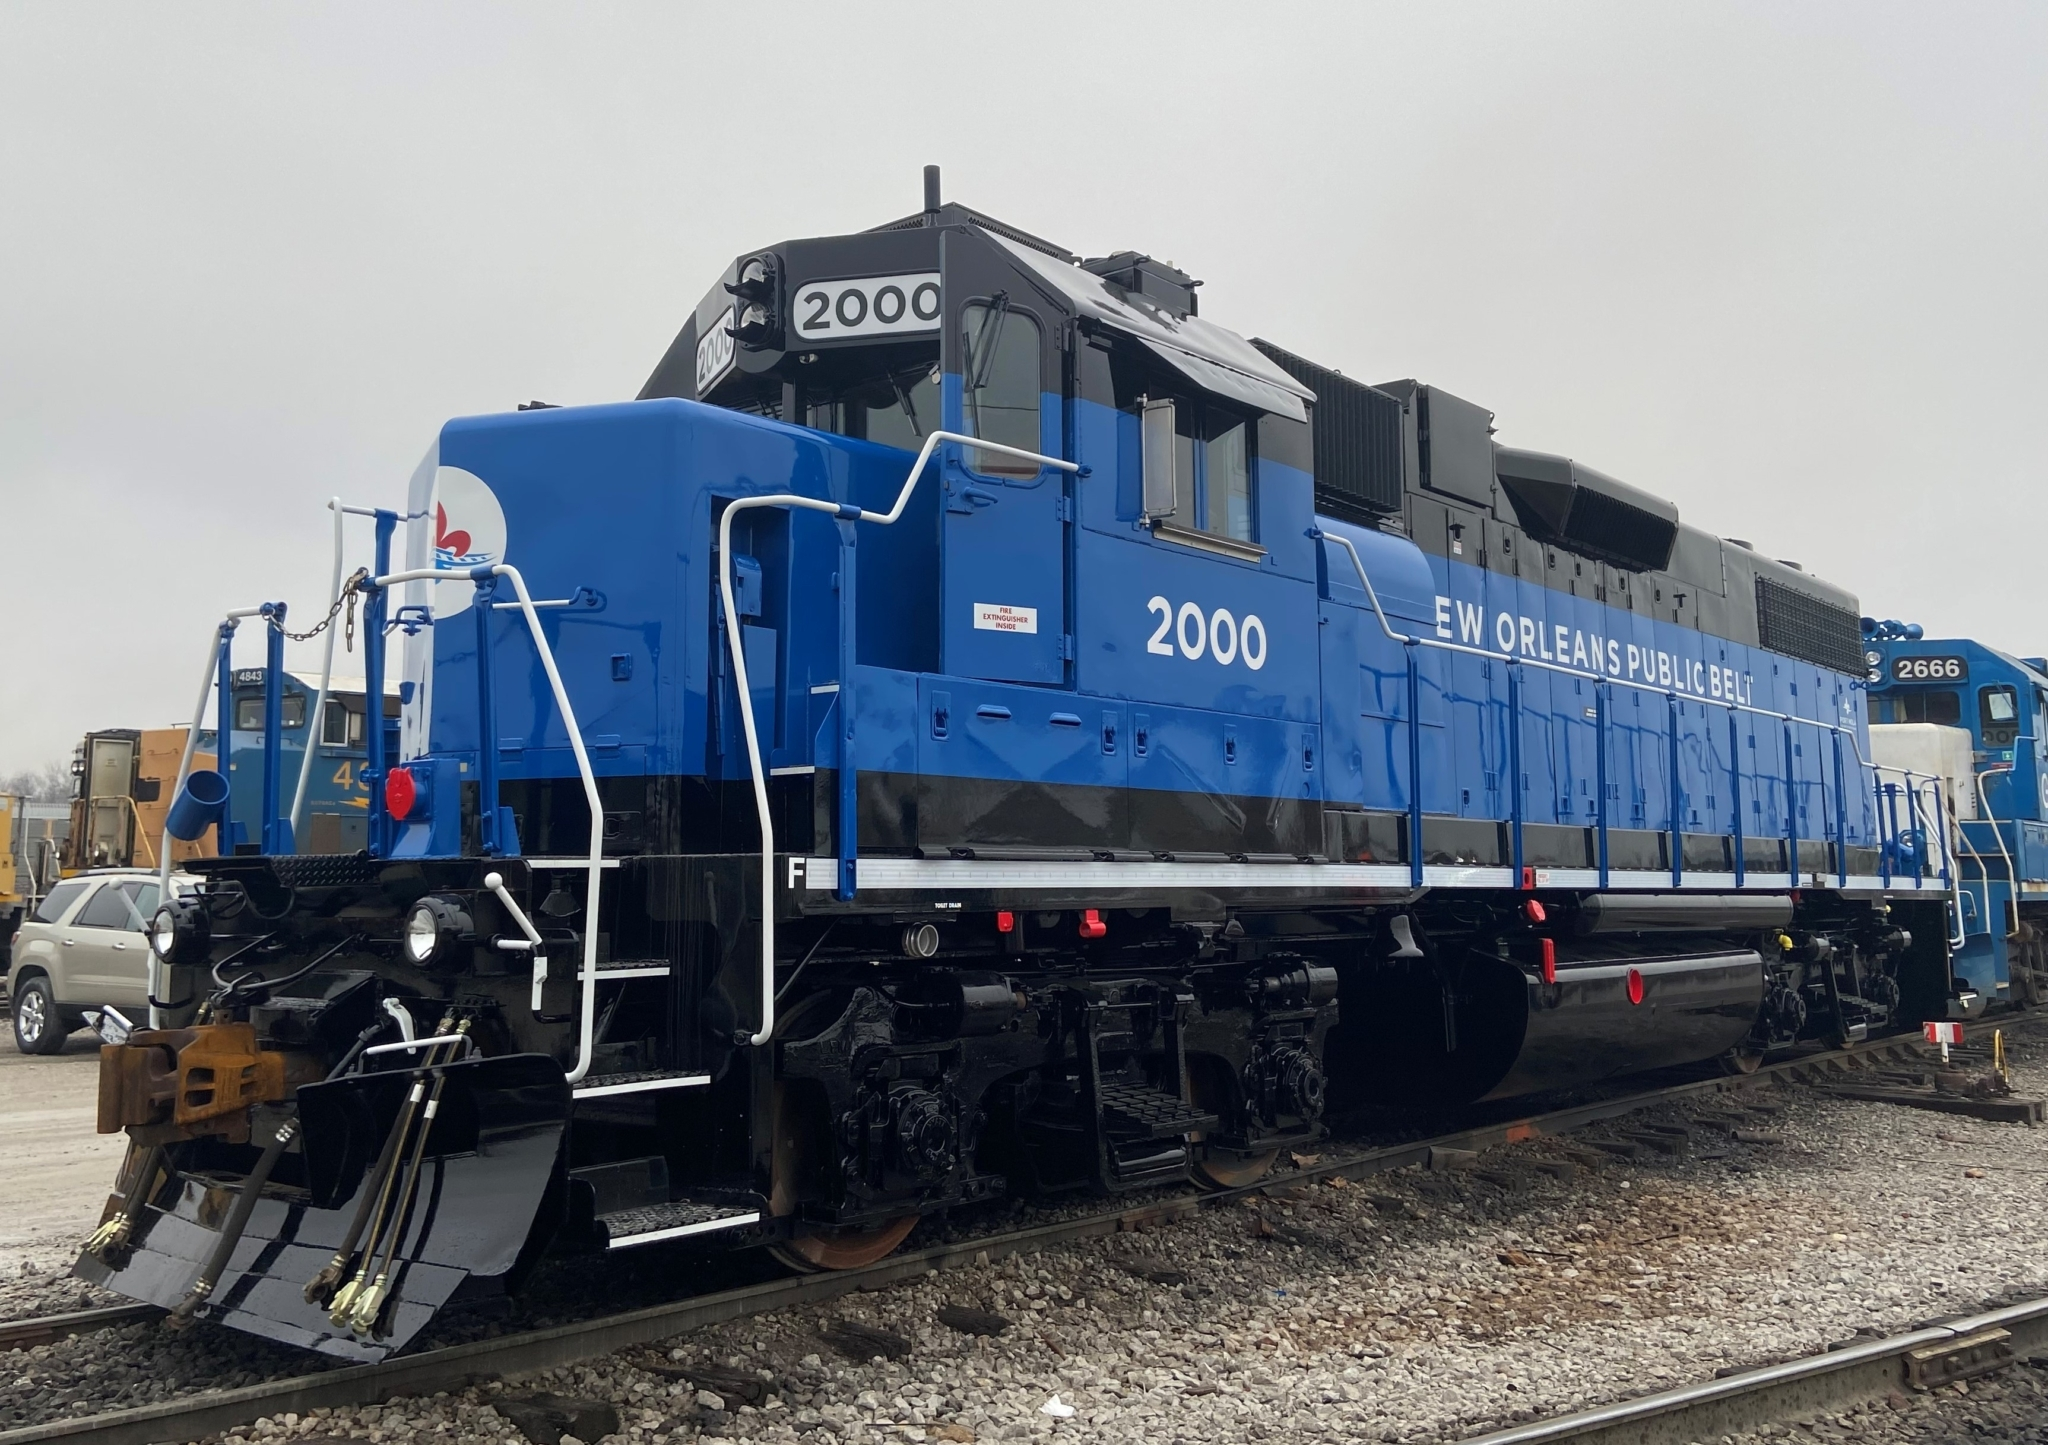 New EMD Locomotive 2000